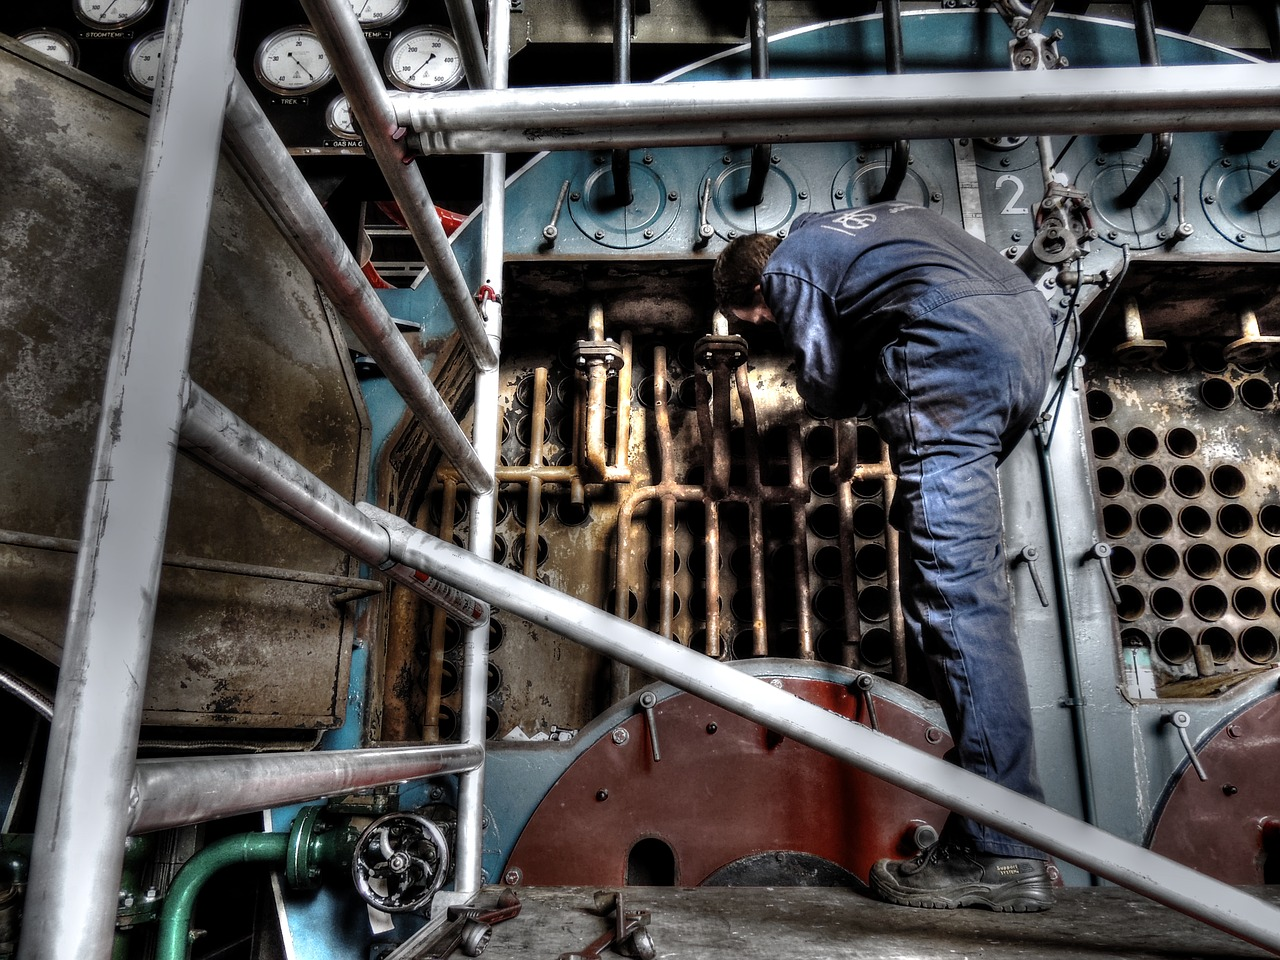 Boiler Alarms And Trips | 5 Common Boiler Safety Devices